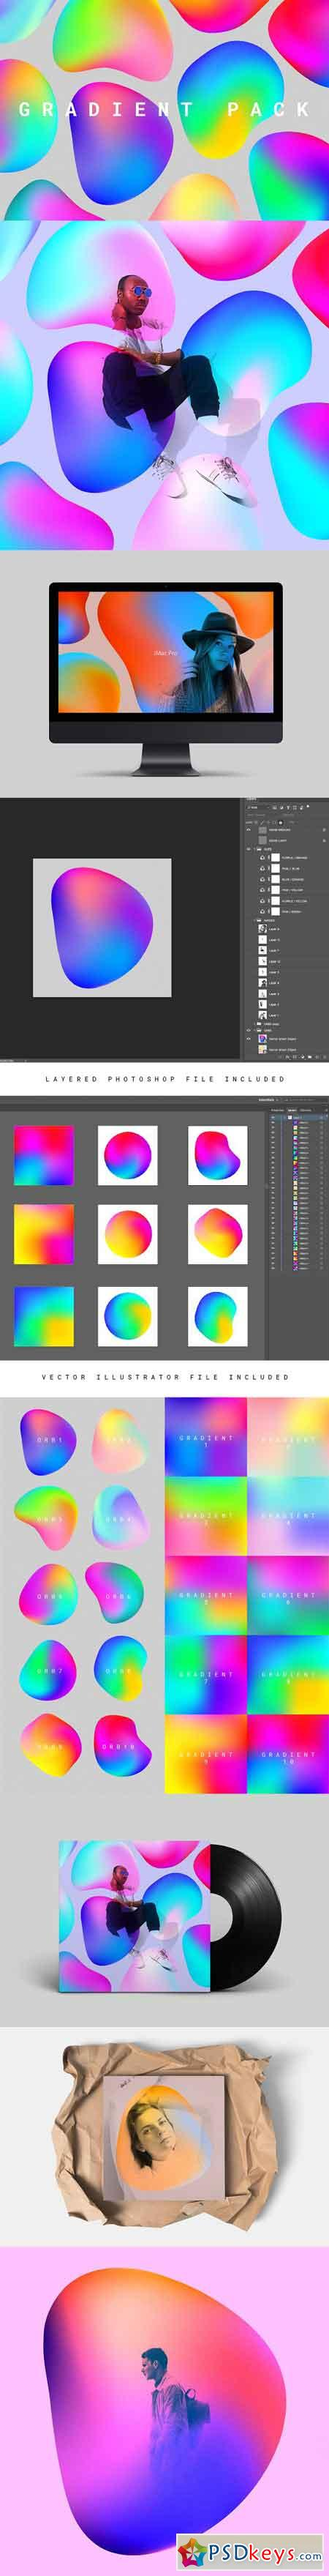 Abstract Gradient Pack 01 2295944